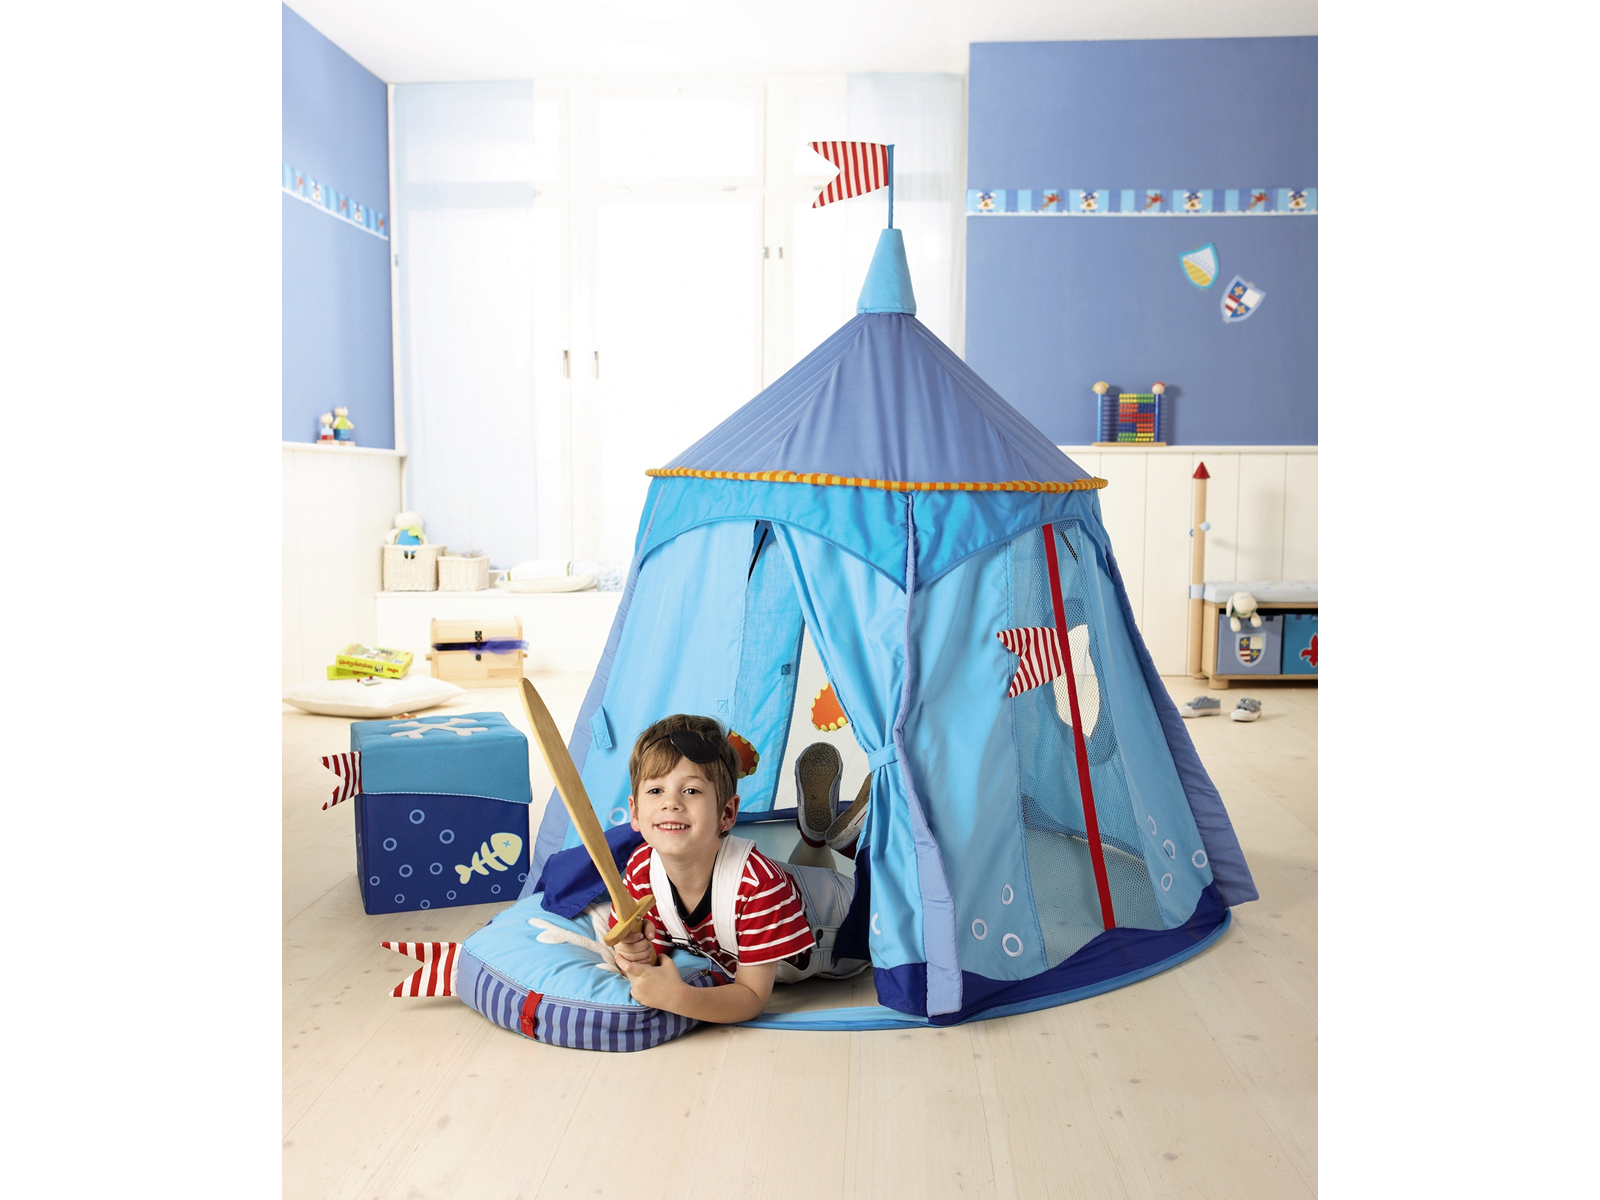 Haba Pirate's Treasure Play Tent - Buy Online - Playhouse of Dreams  - 1